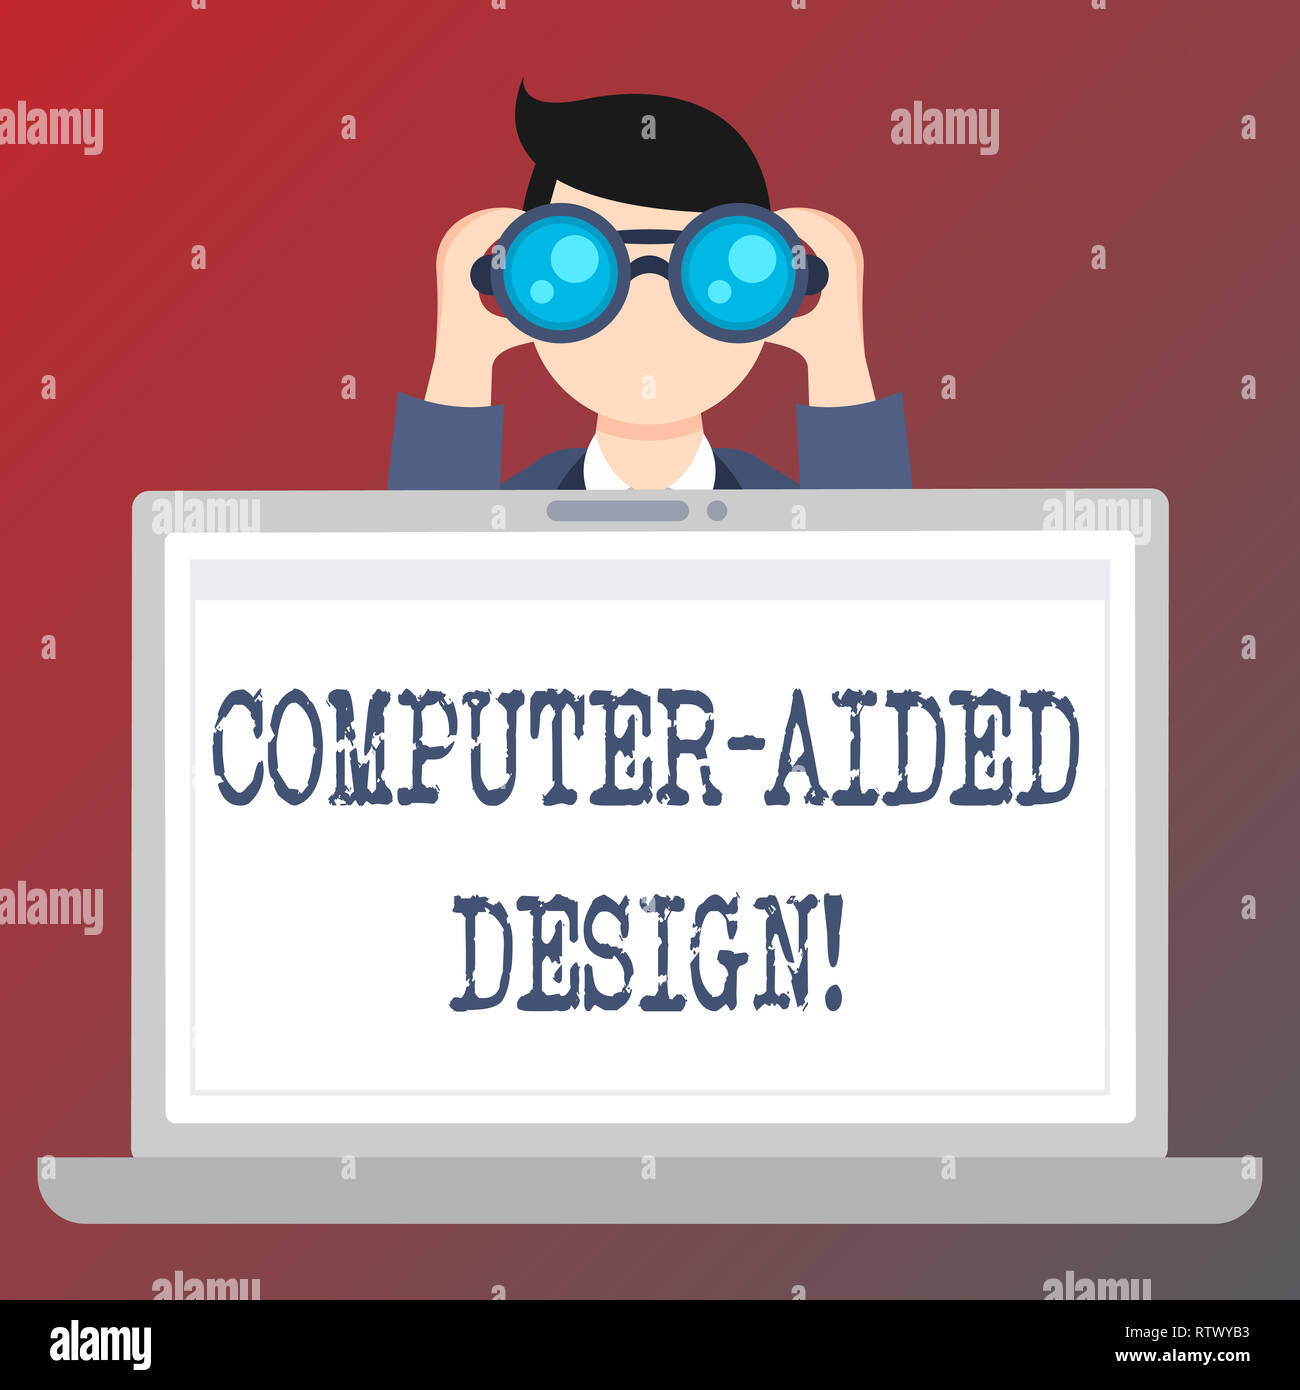 Computer Aided Design Stock Photos & Computer Aided Design